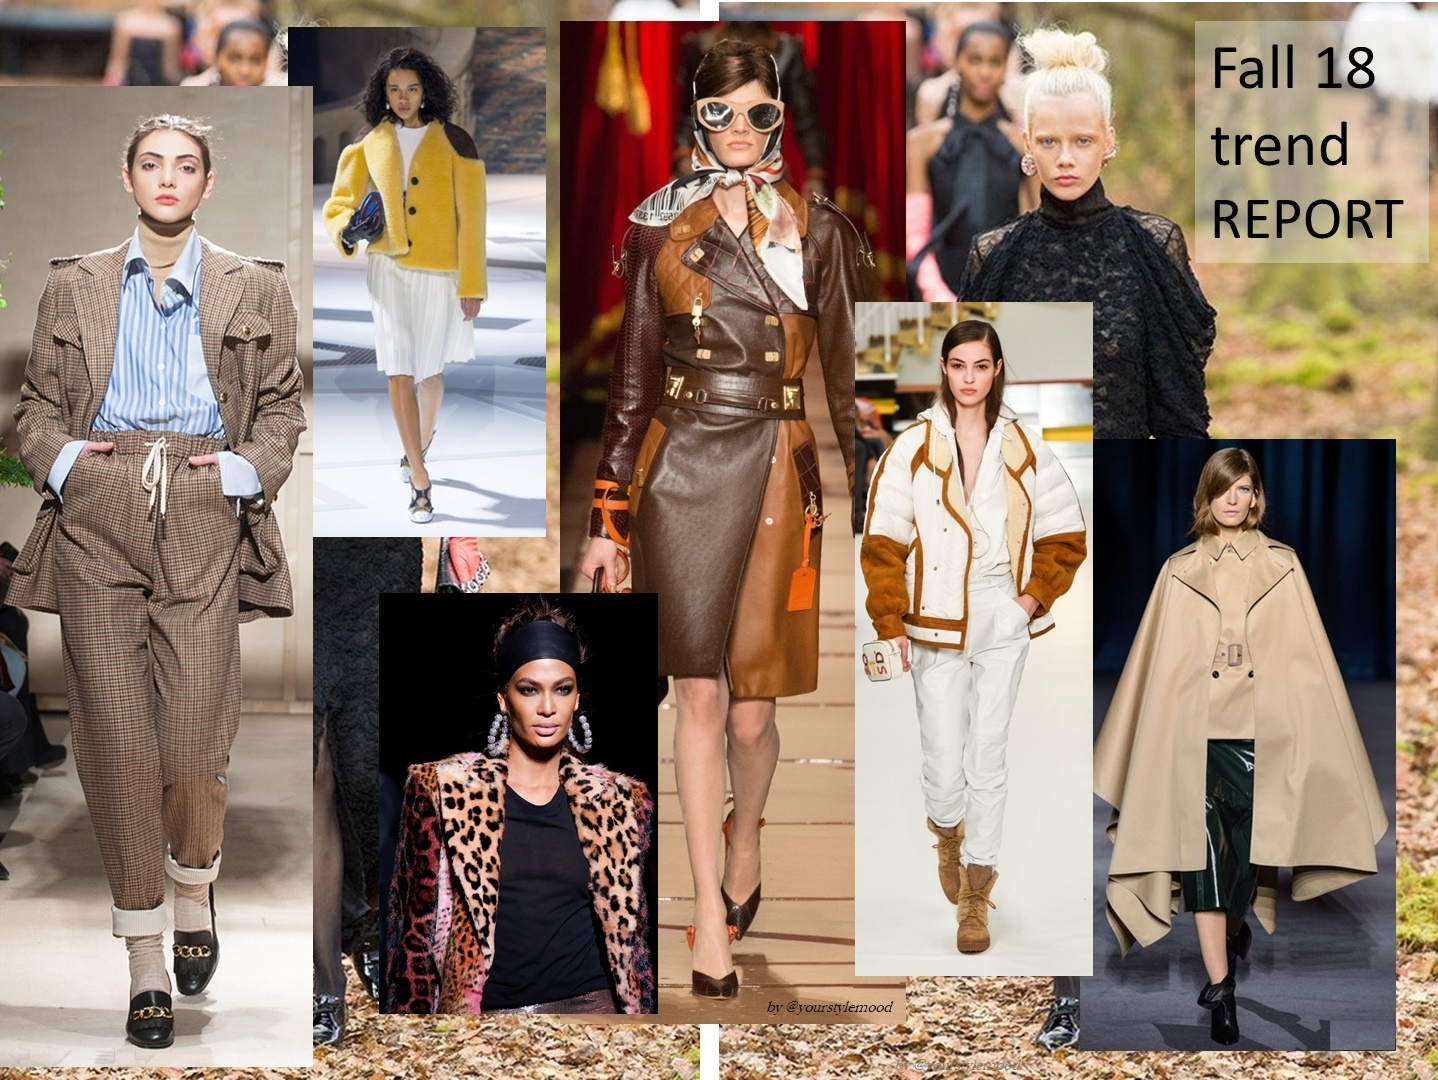 Top 10 Fall Trends – тренды осени 2018